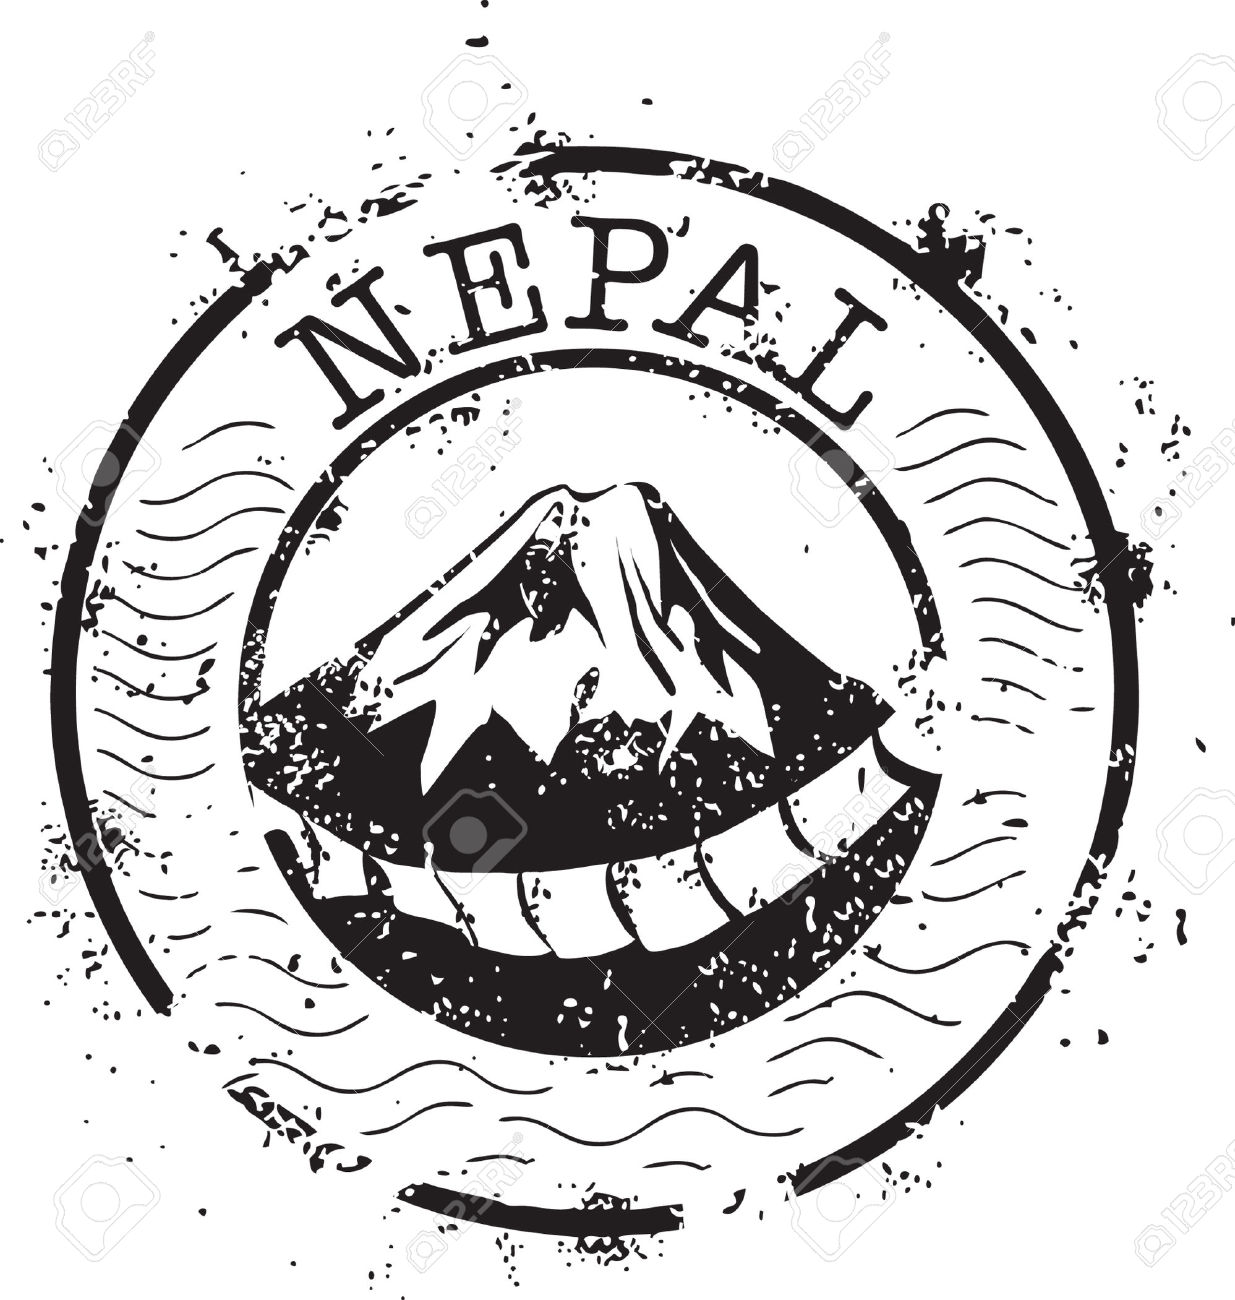 Nepal black and white clipart.